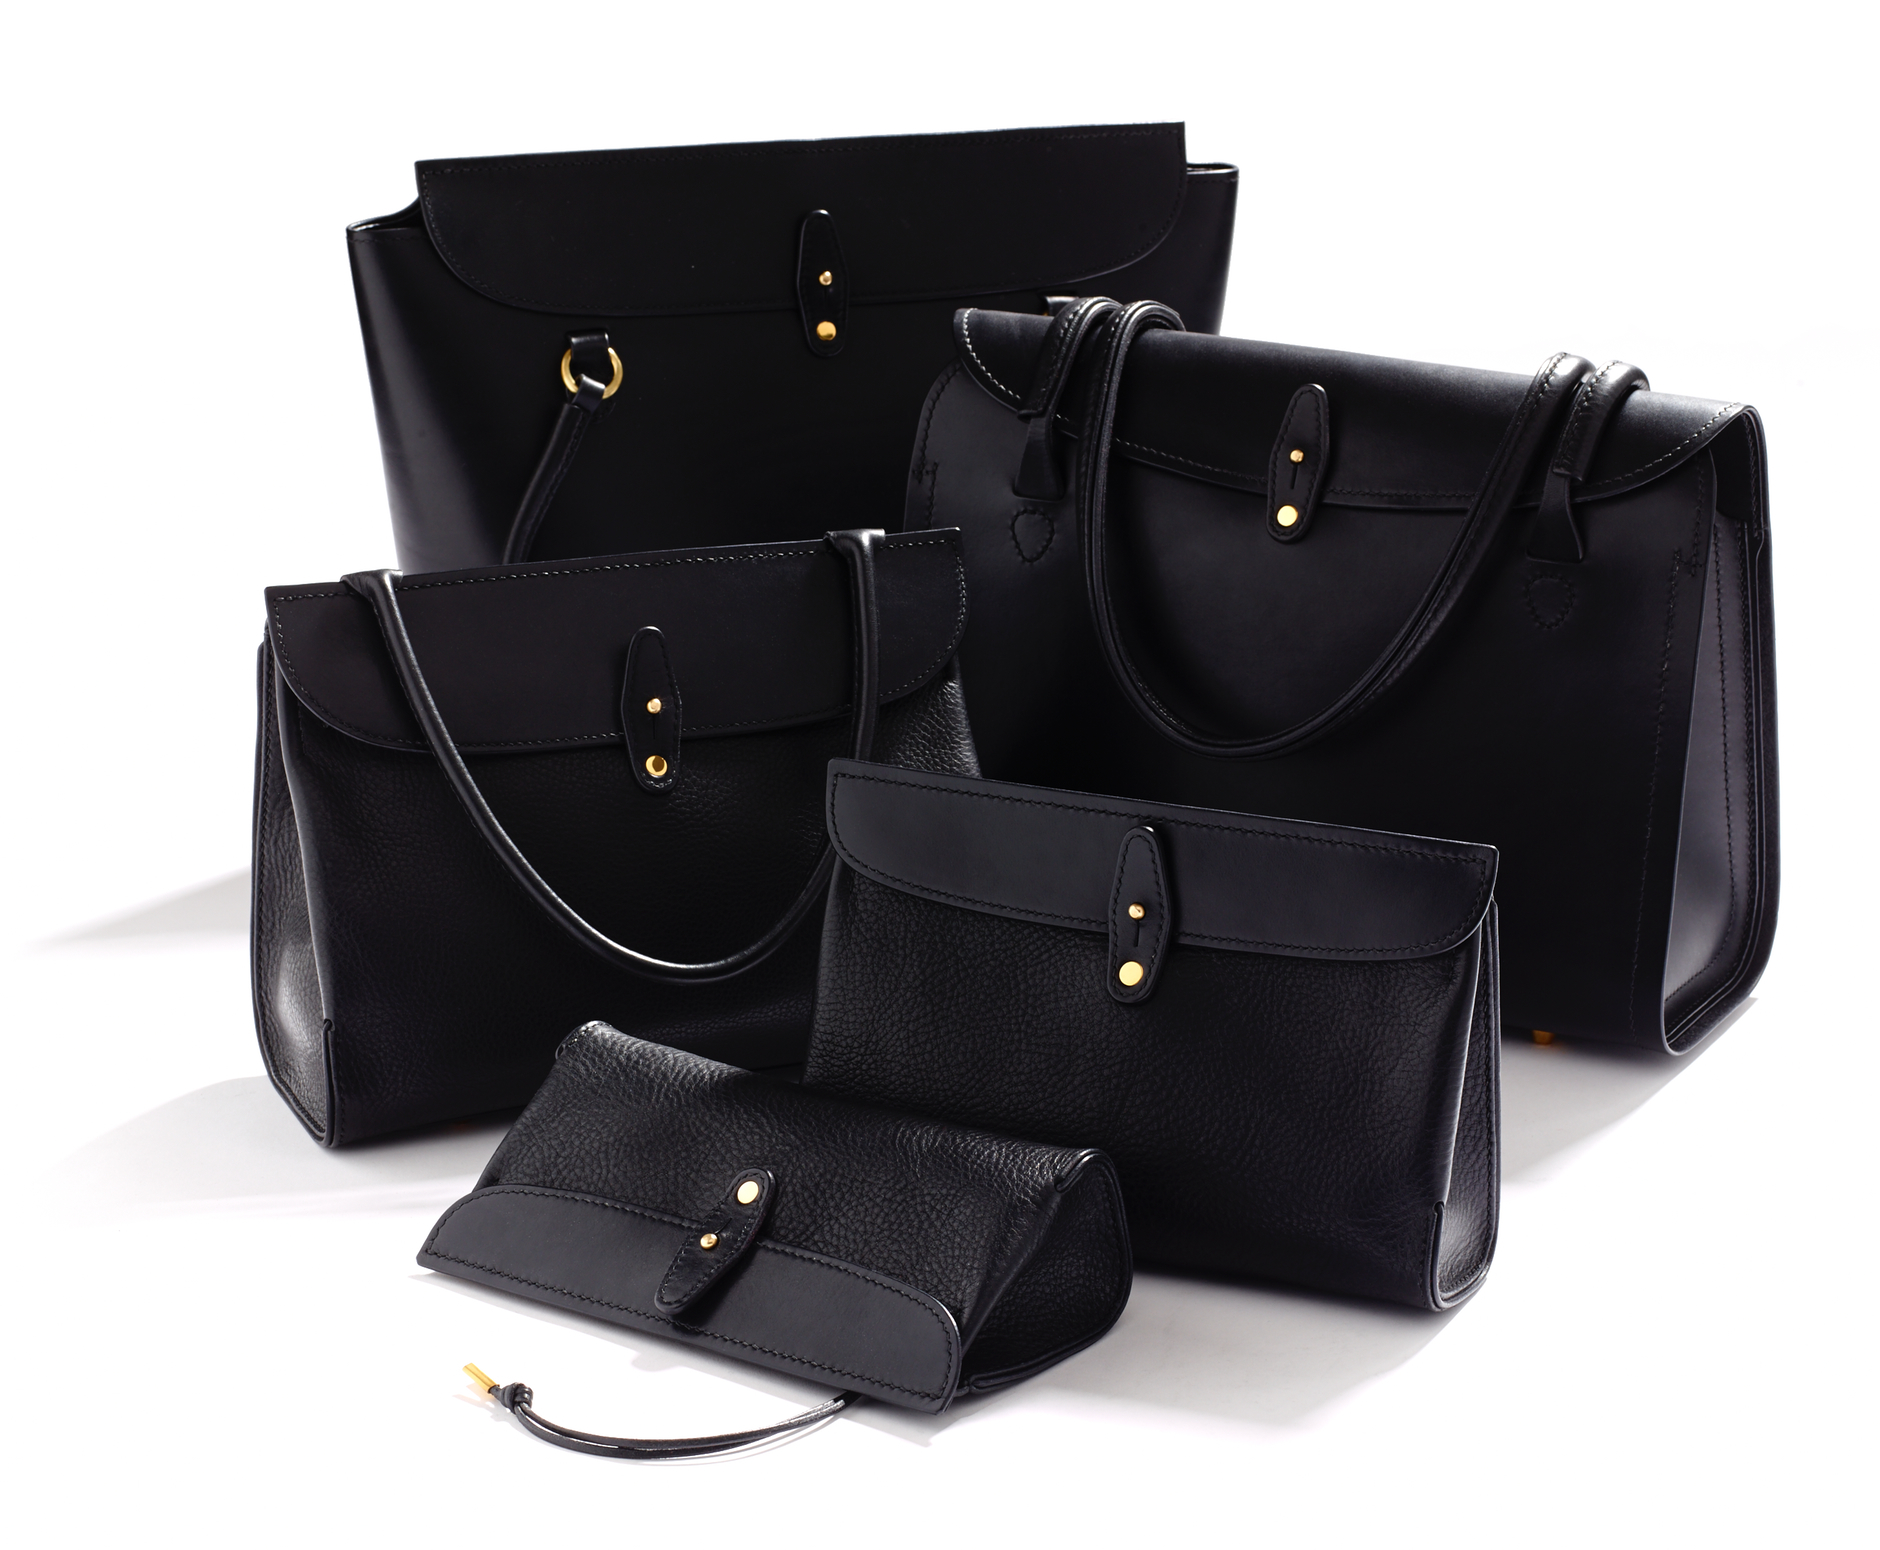 The Core Collection - Five refined handbag designs, hand-crafted to order.View the collection